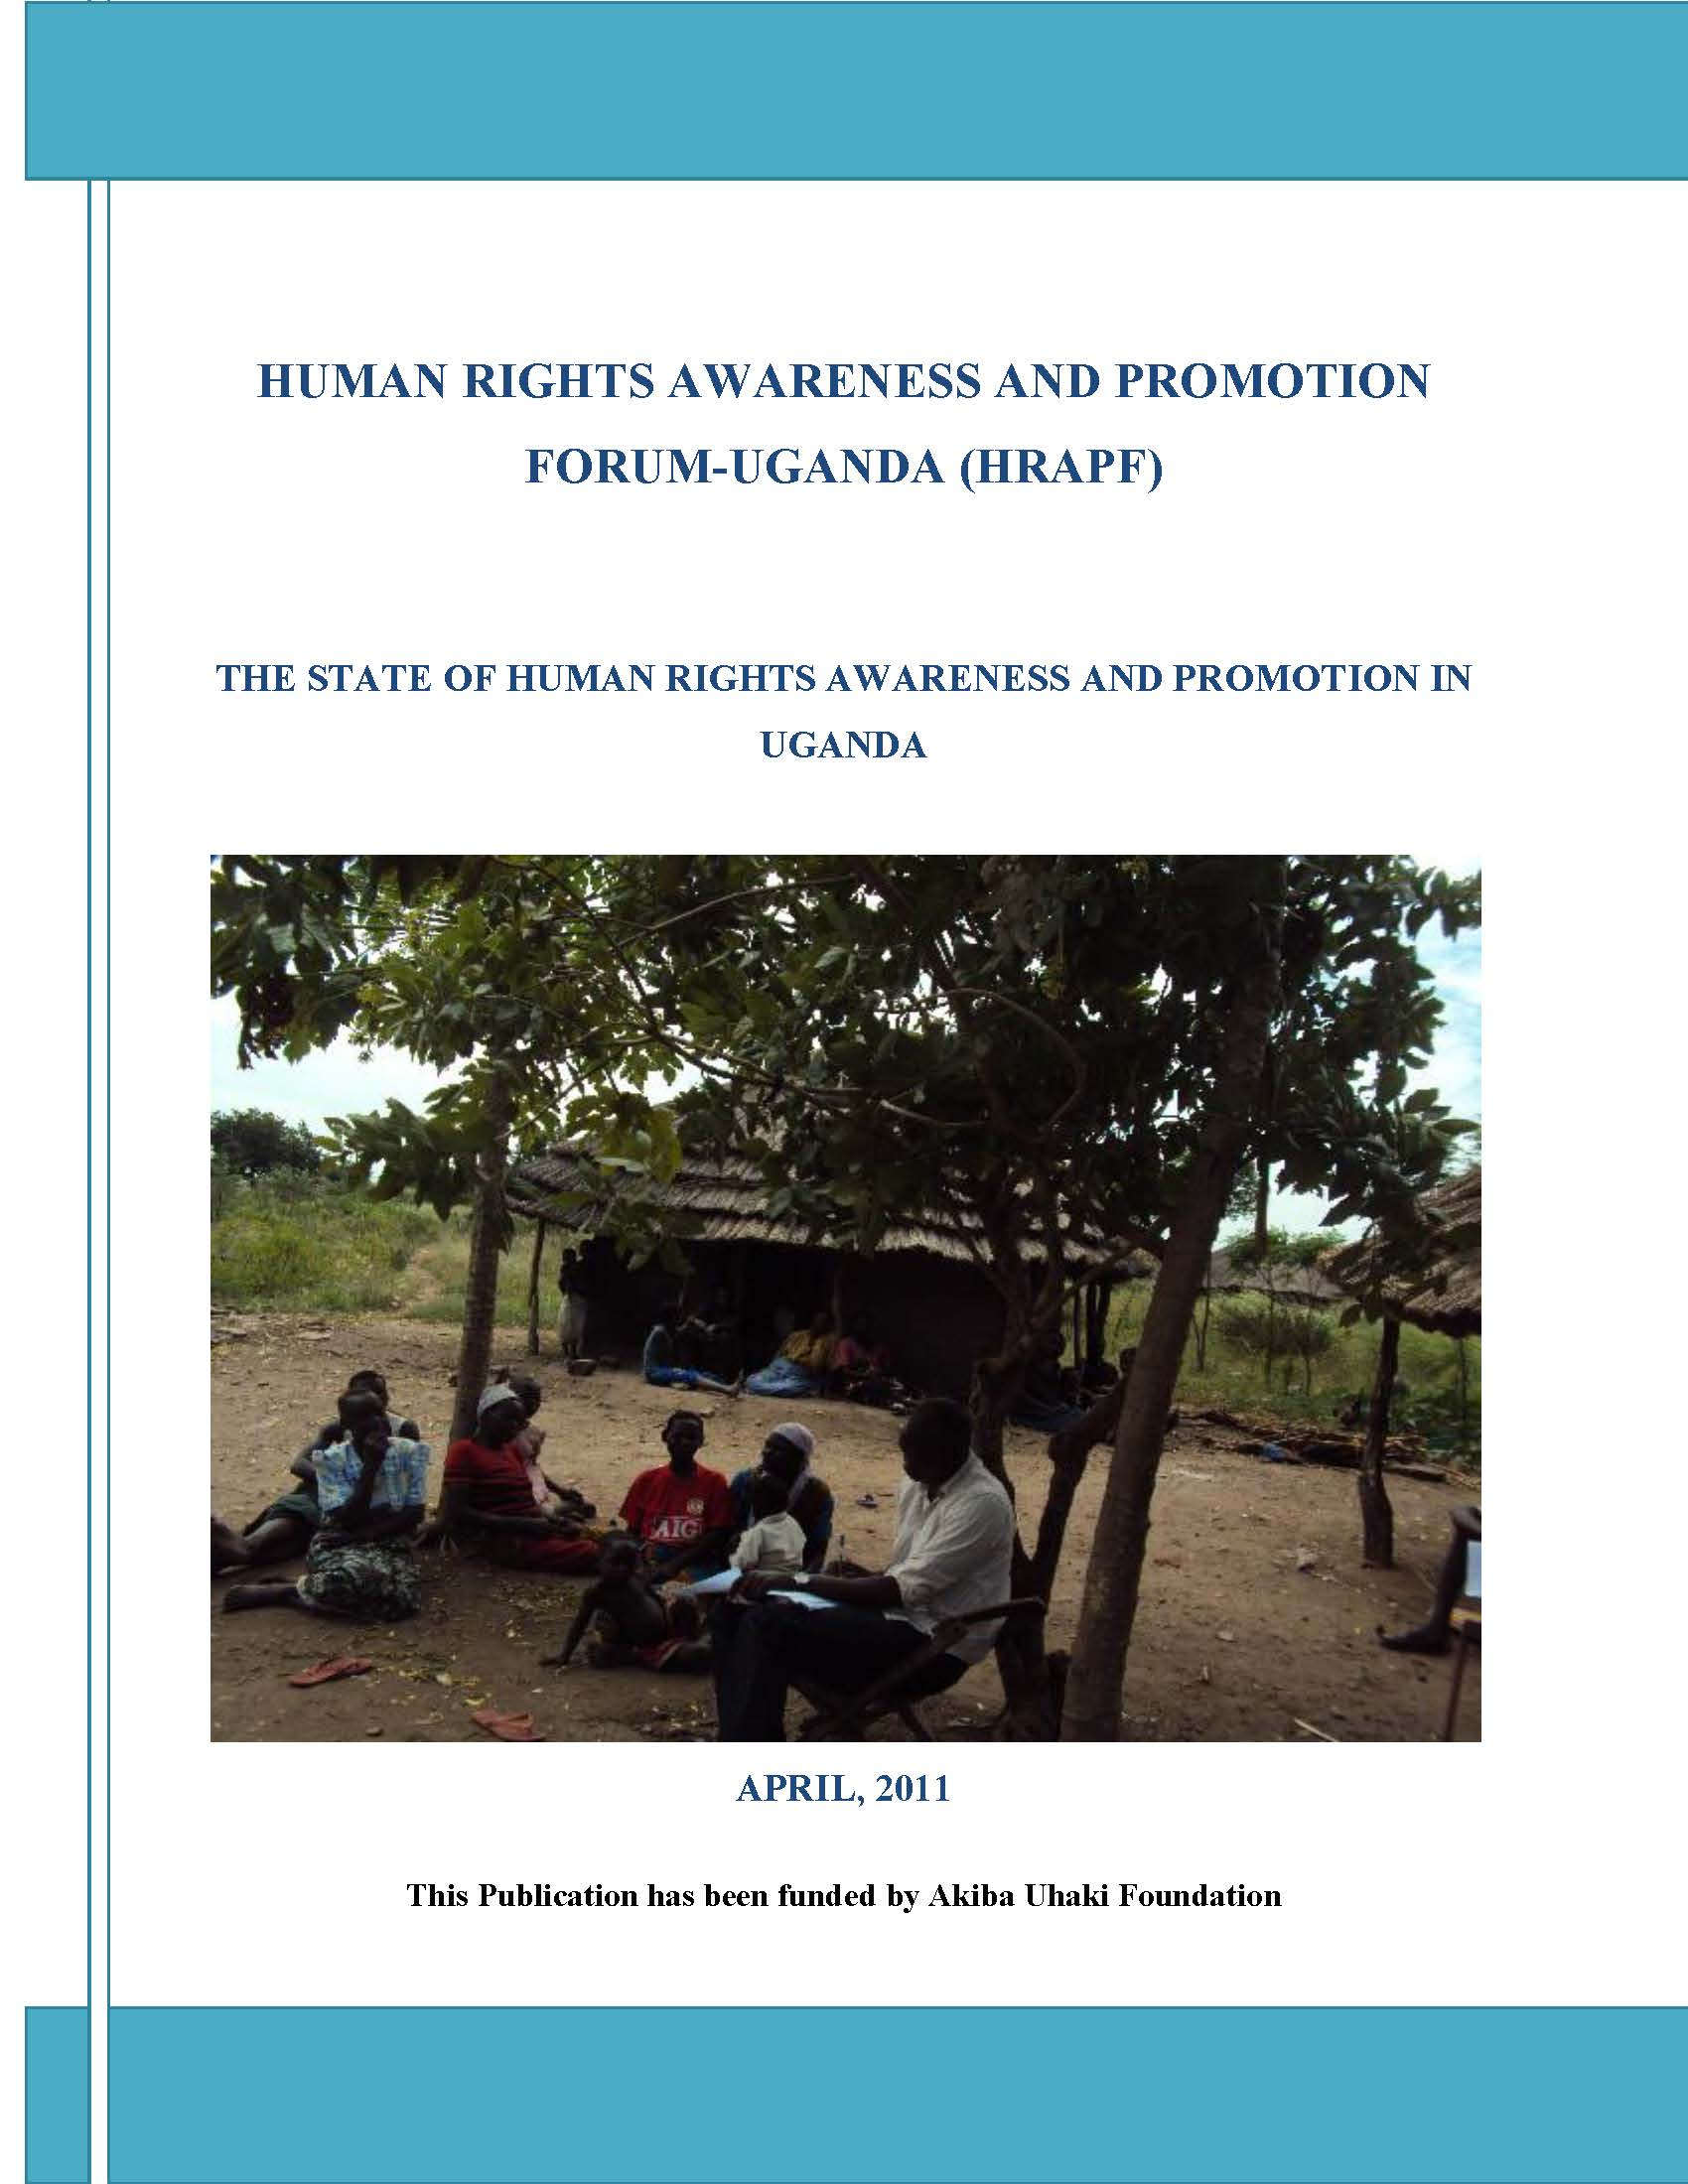 Human rights awareness and promotion in uganda